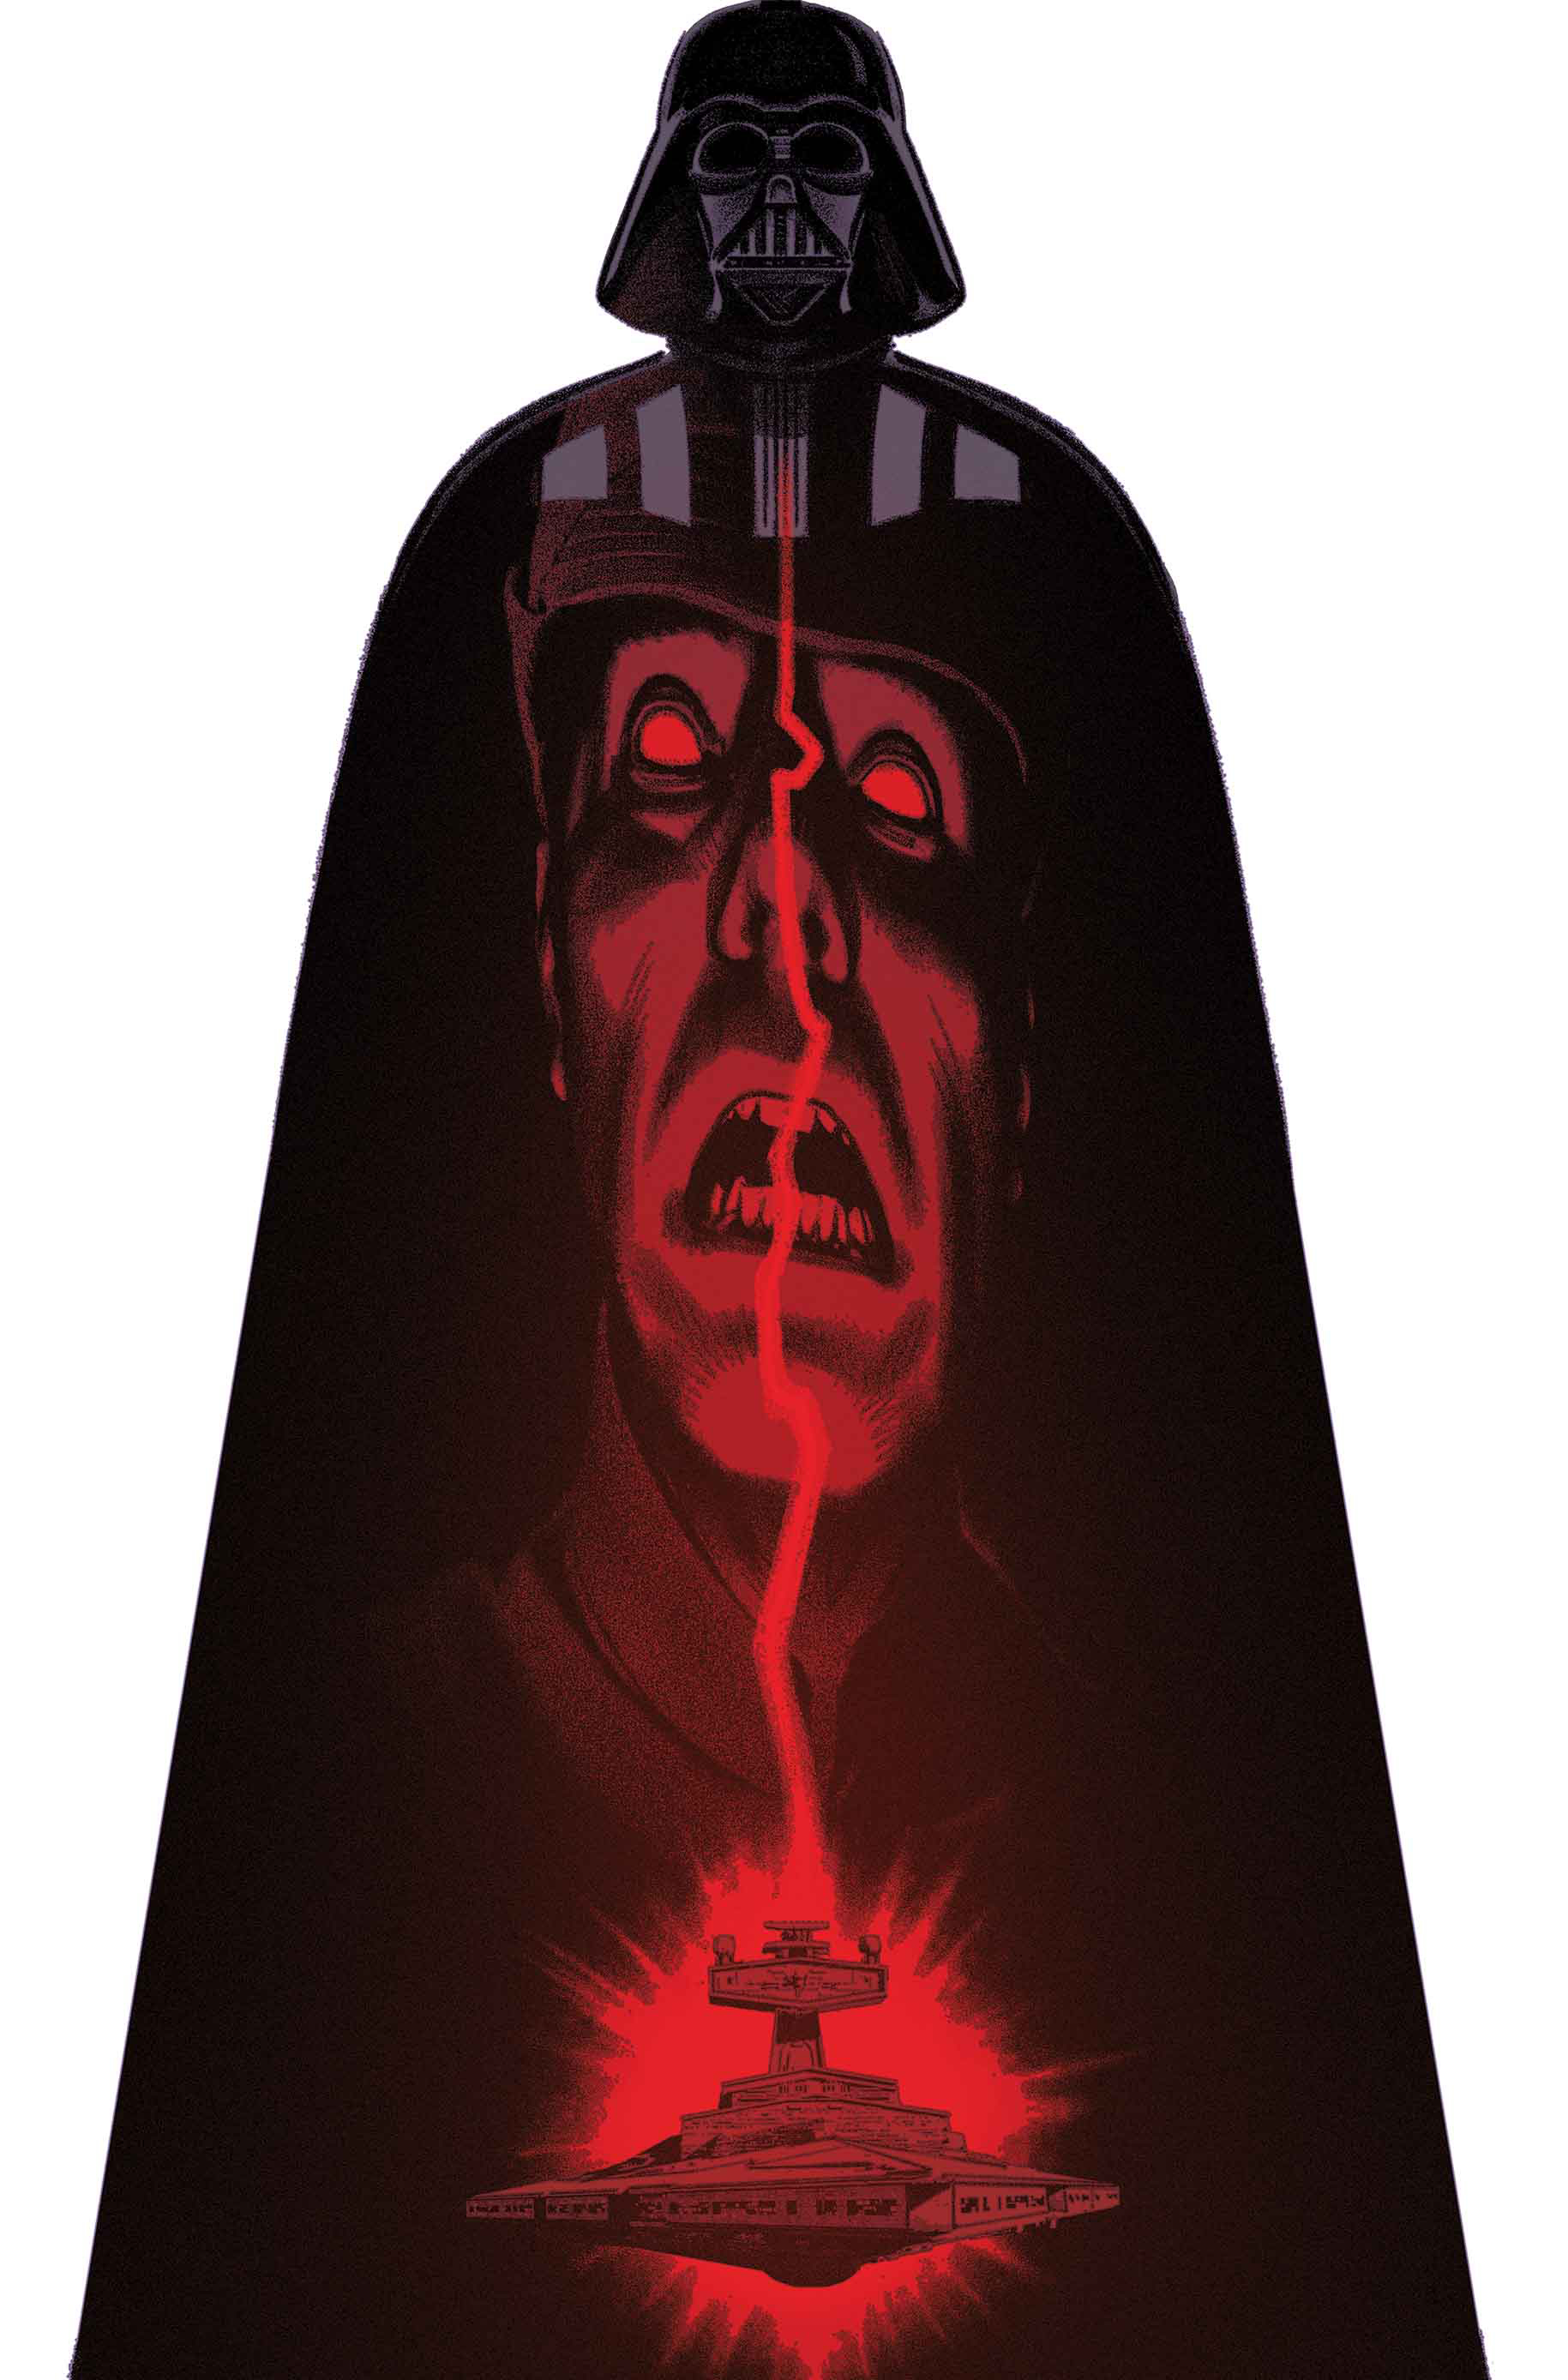 STAR WARS VADER DARK VISIONS #2 (OF 5)